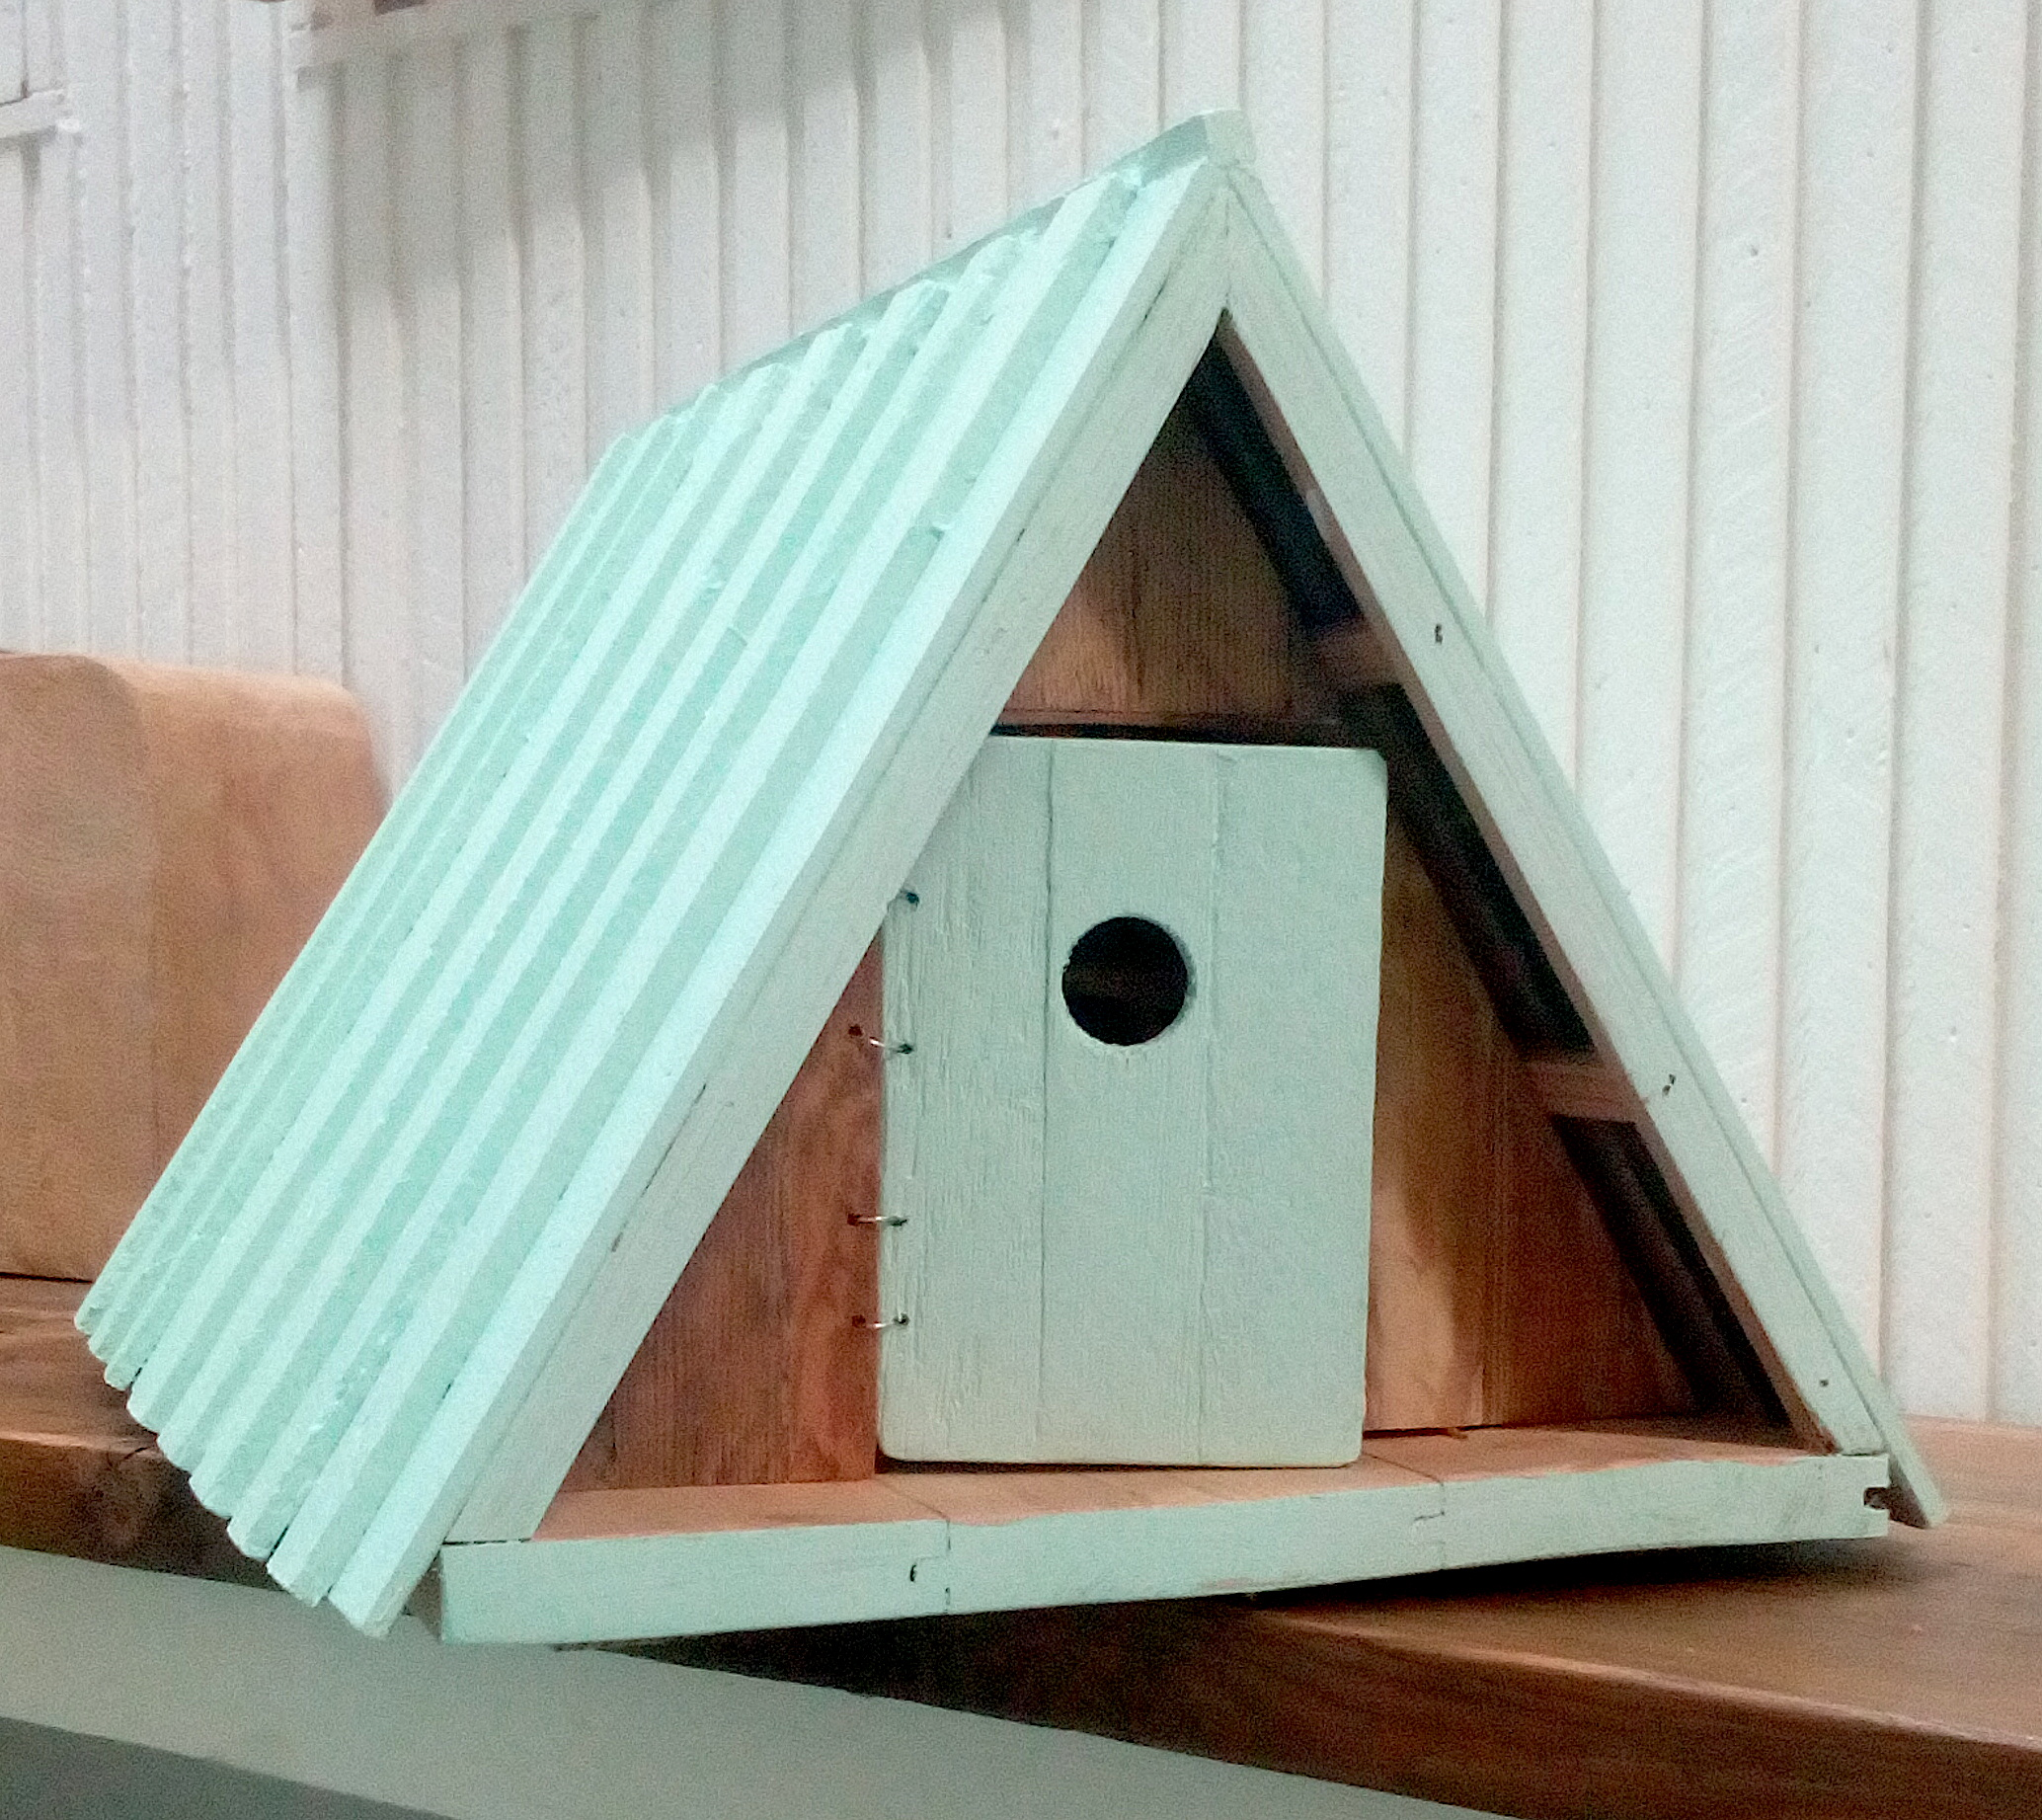 Green Wooden Hut Model